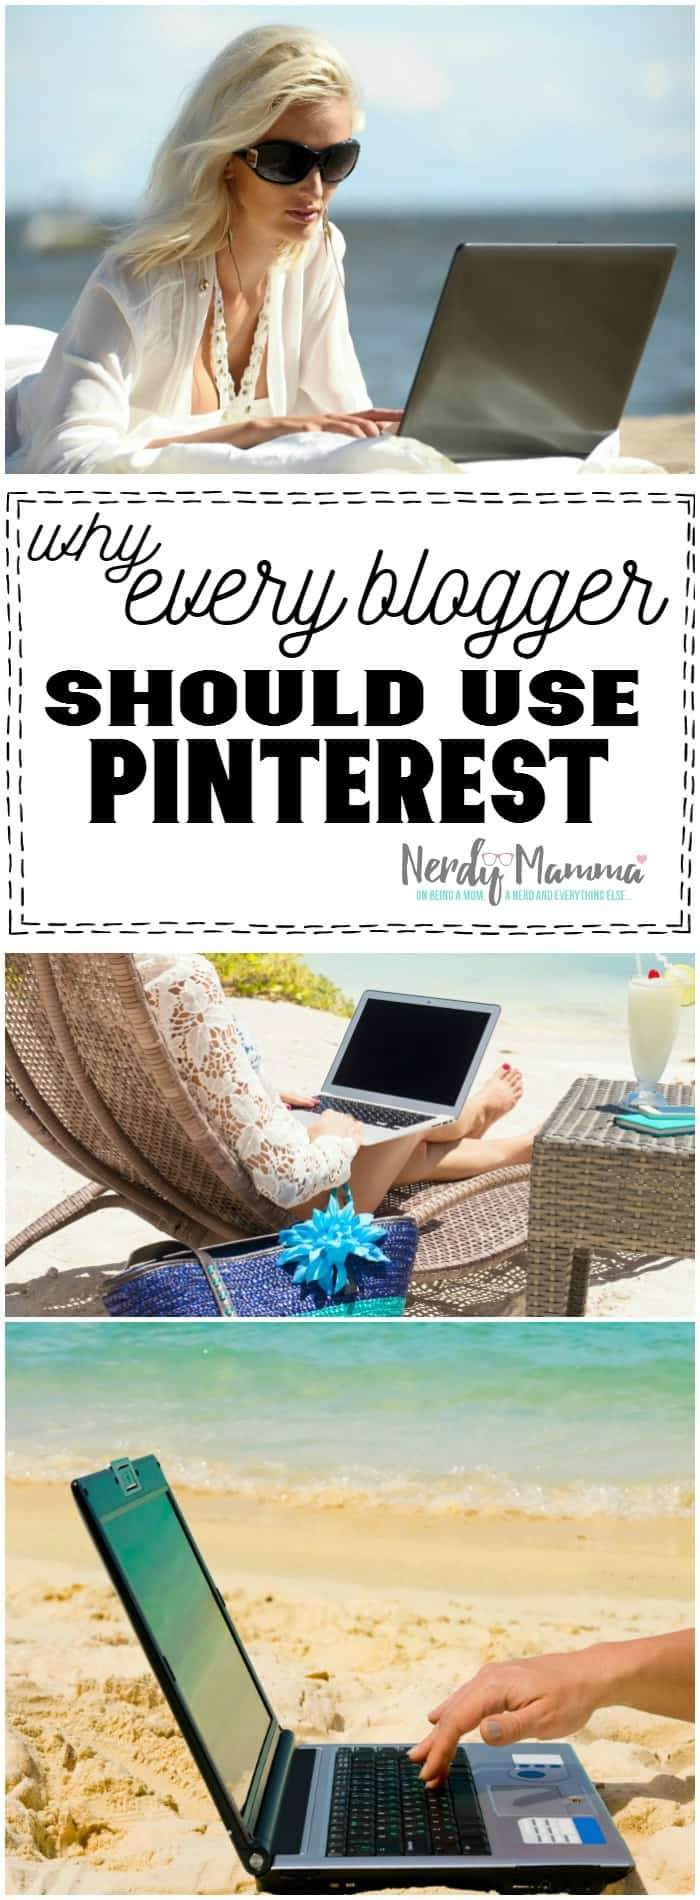 Pinterest is THE PLACE to be if you're a blogger. Let me count the ways....